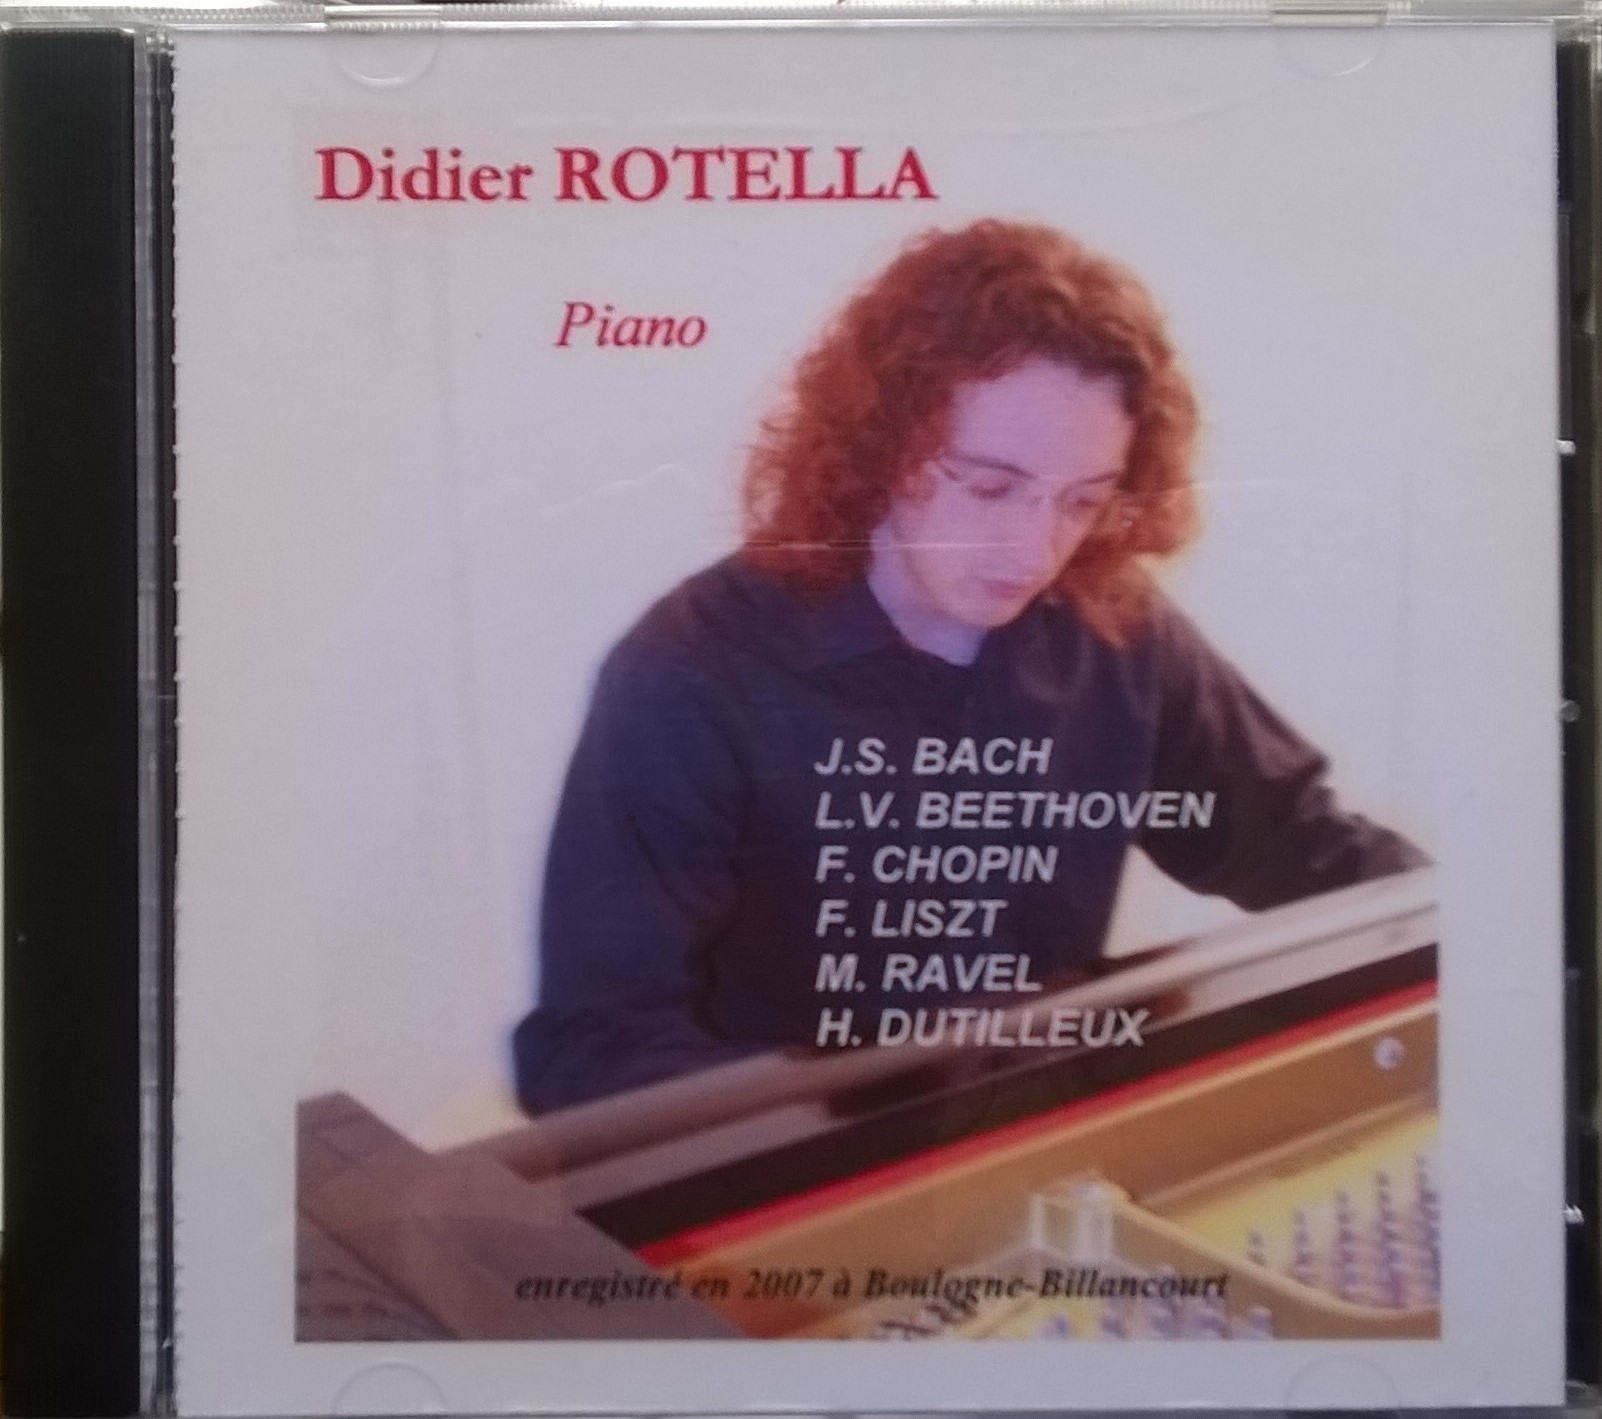 didier rotella Piano